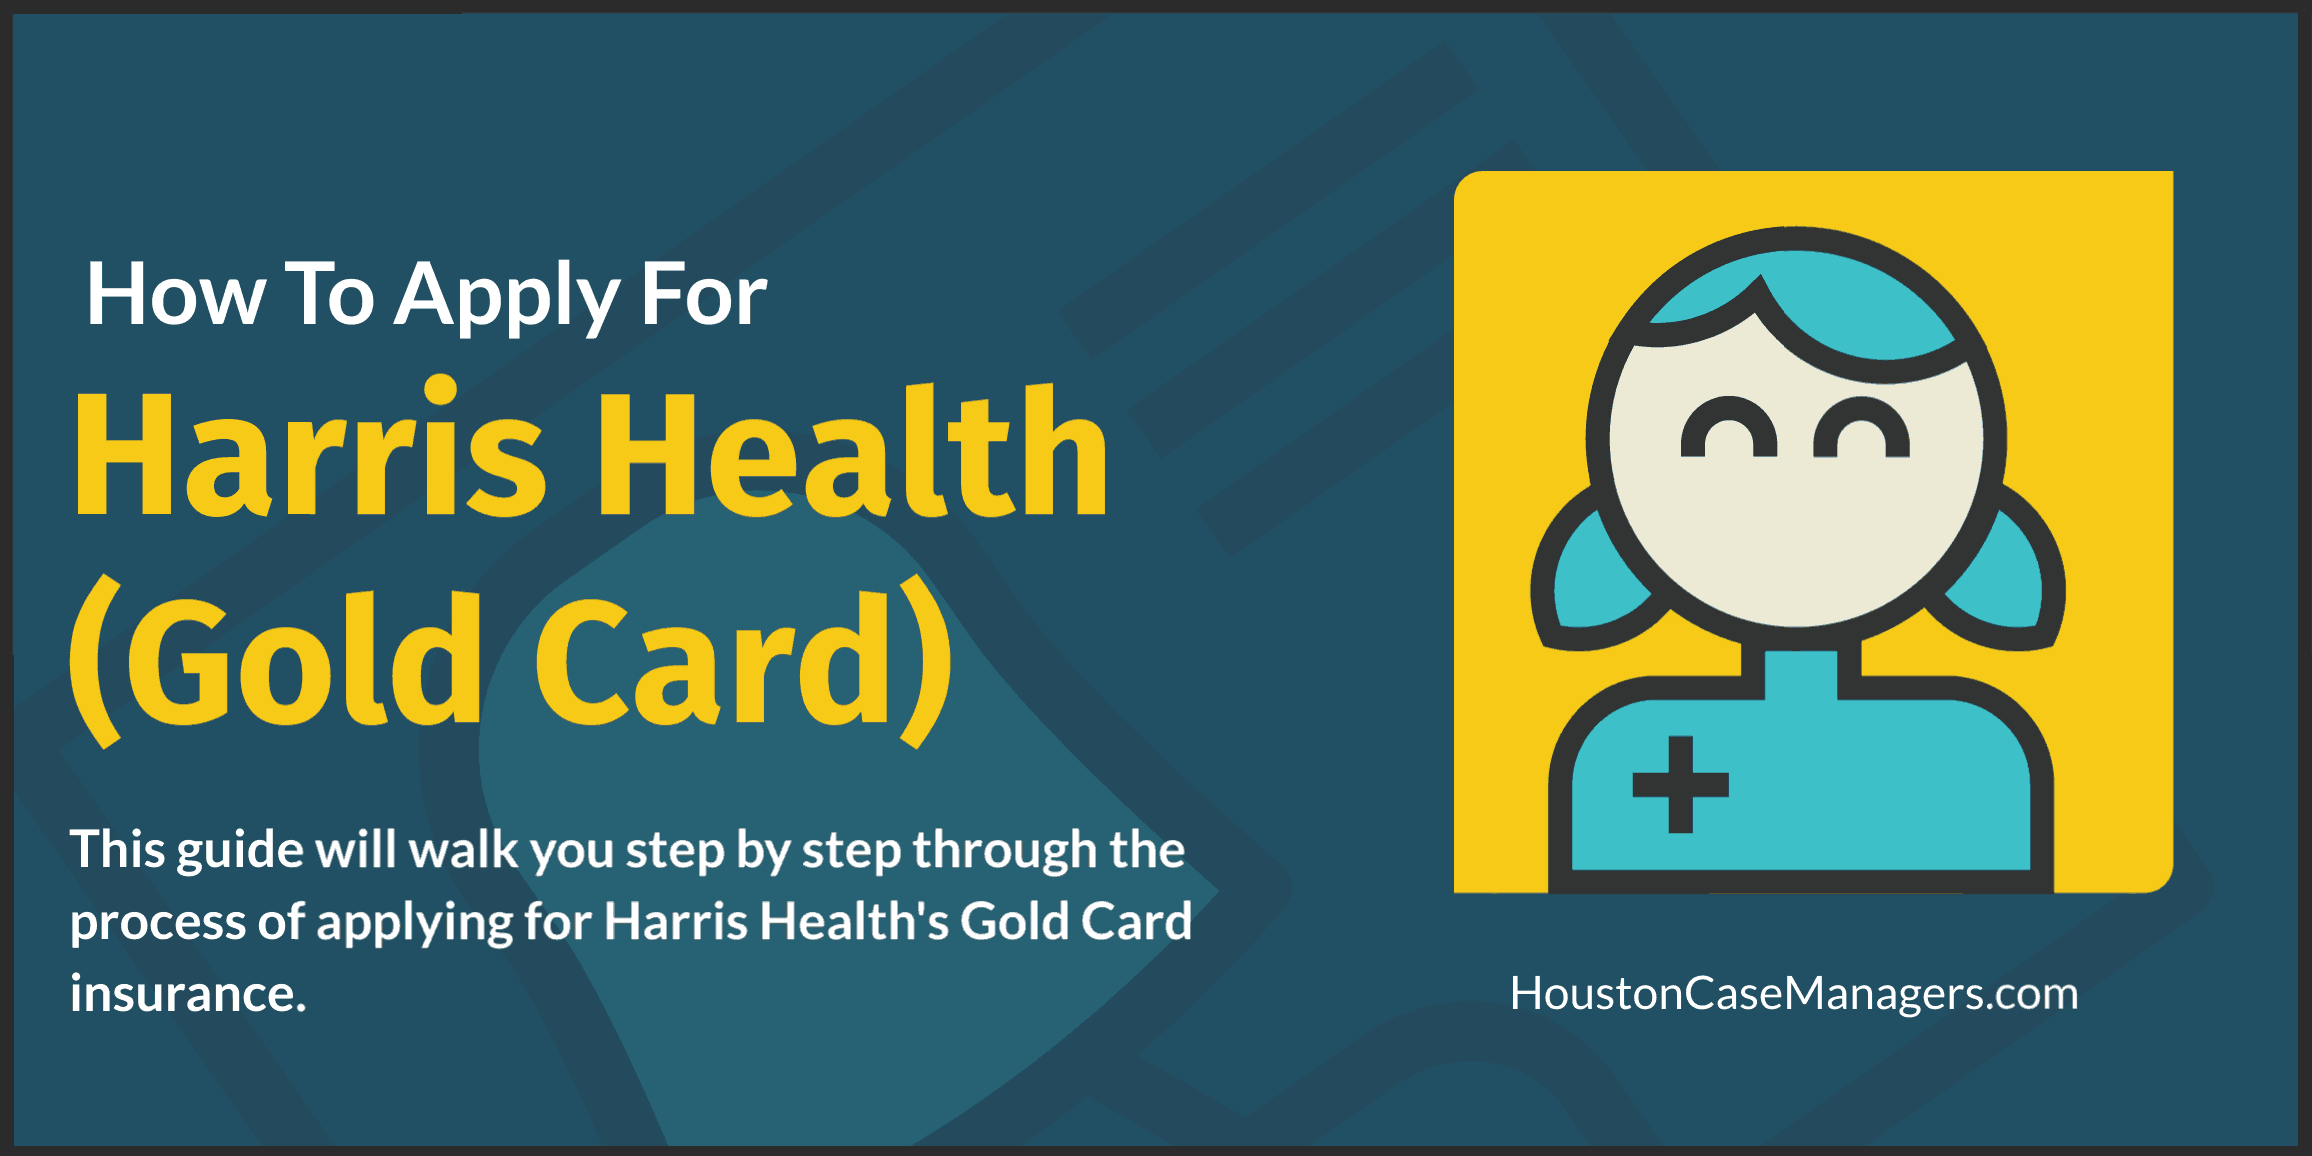 How To Apply For Harris Health (Gold Card)